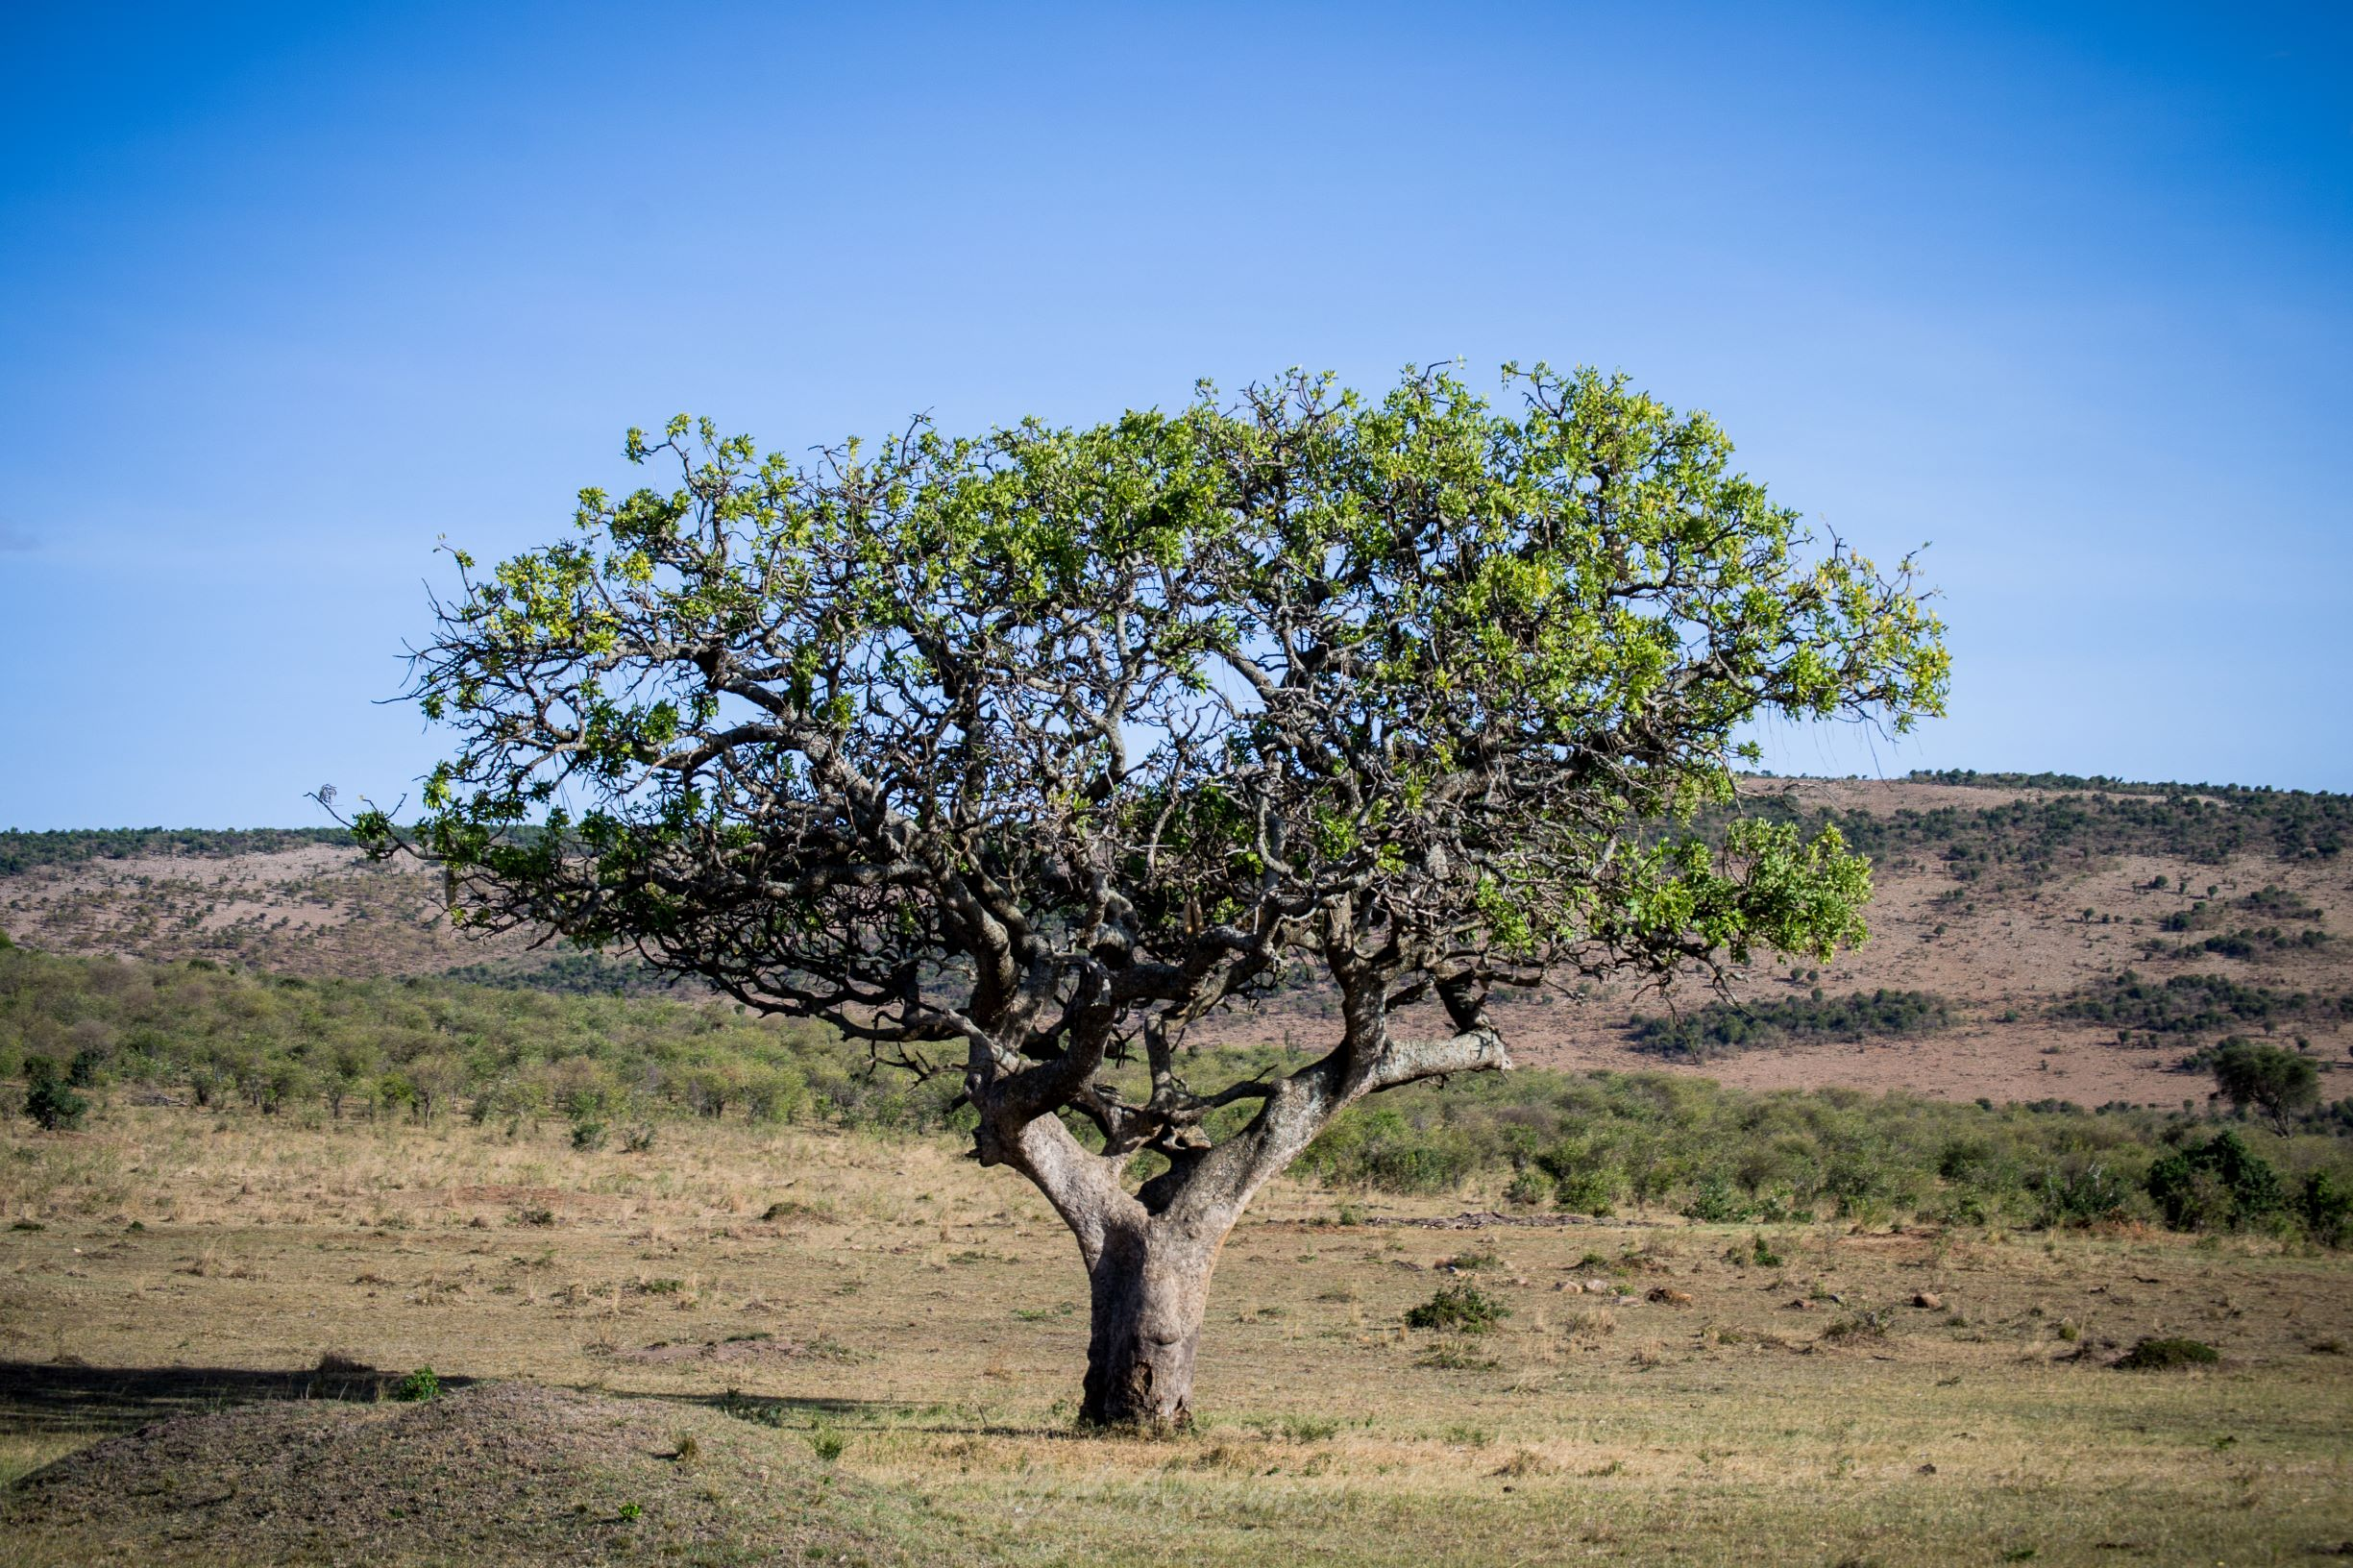 Landscape of Kenya with a Tree